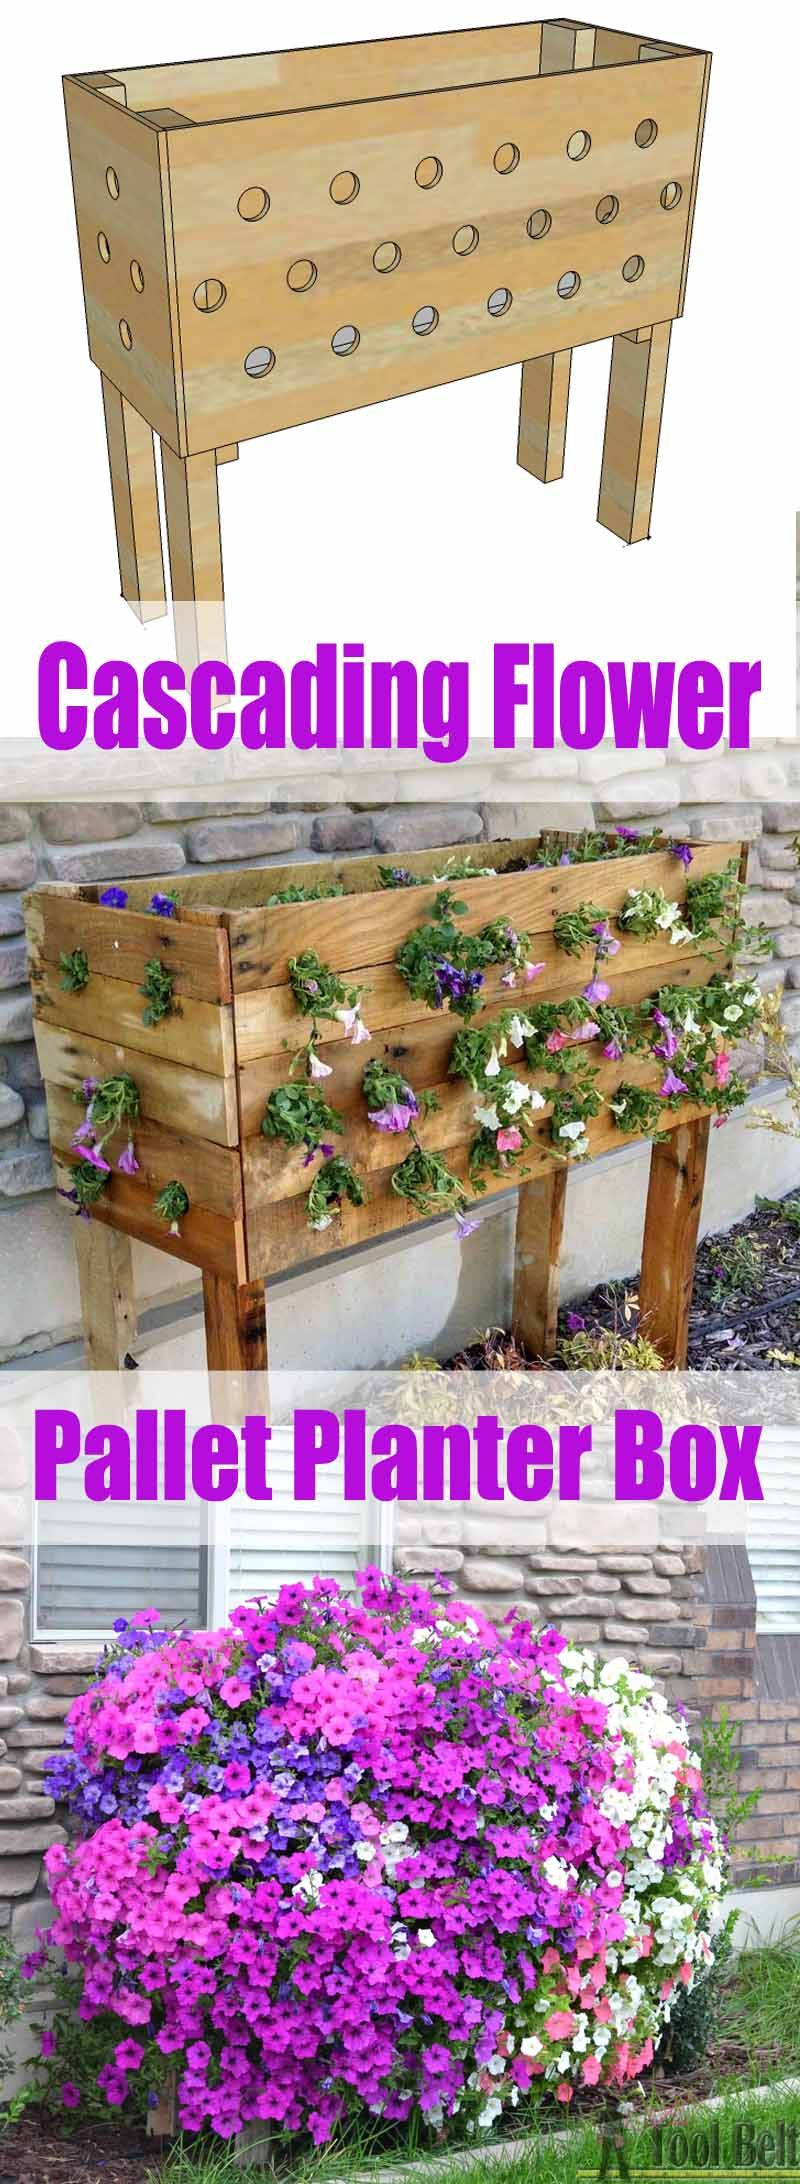 Pallet Cascading Flower Planter Box Plans and